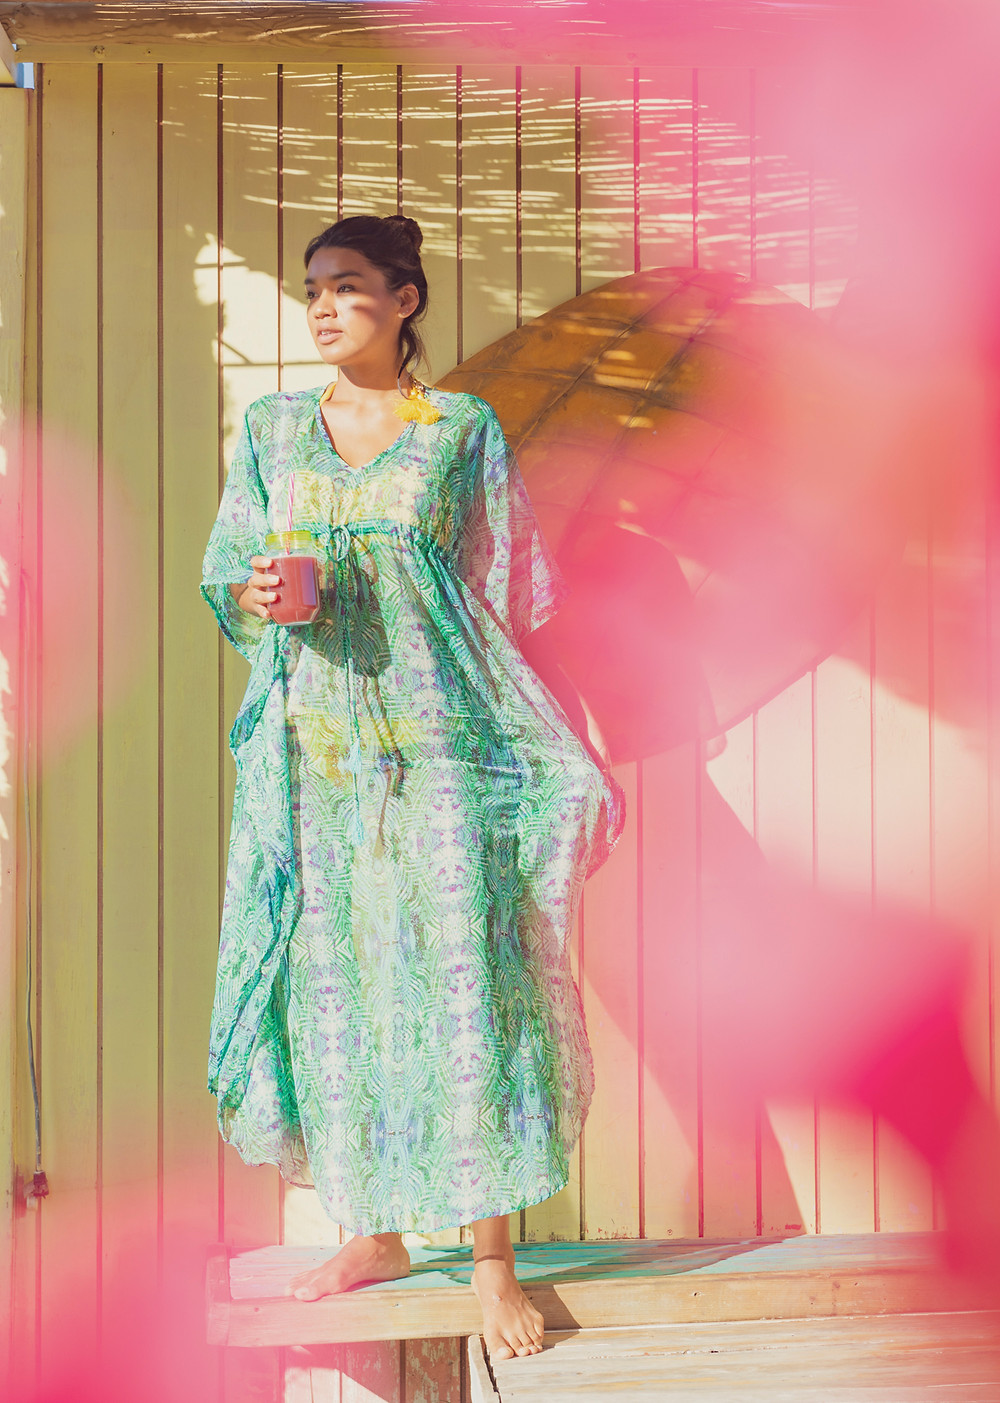 A summer dress in a exotic location. Photographer Ben Welsh mixed colours for a dreamy feeling.